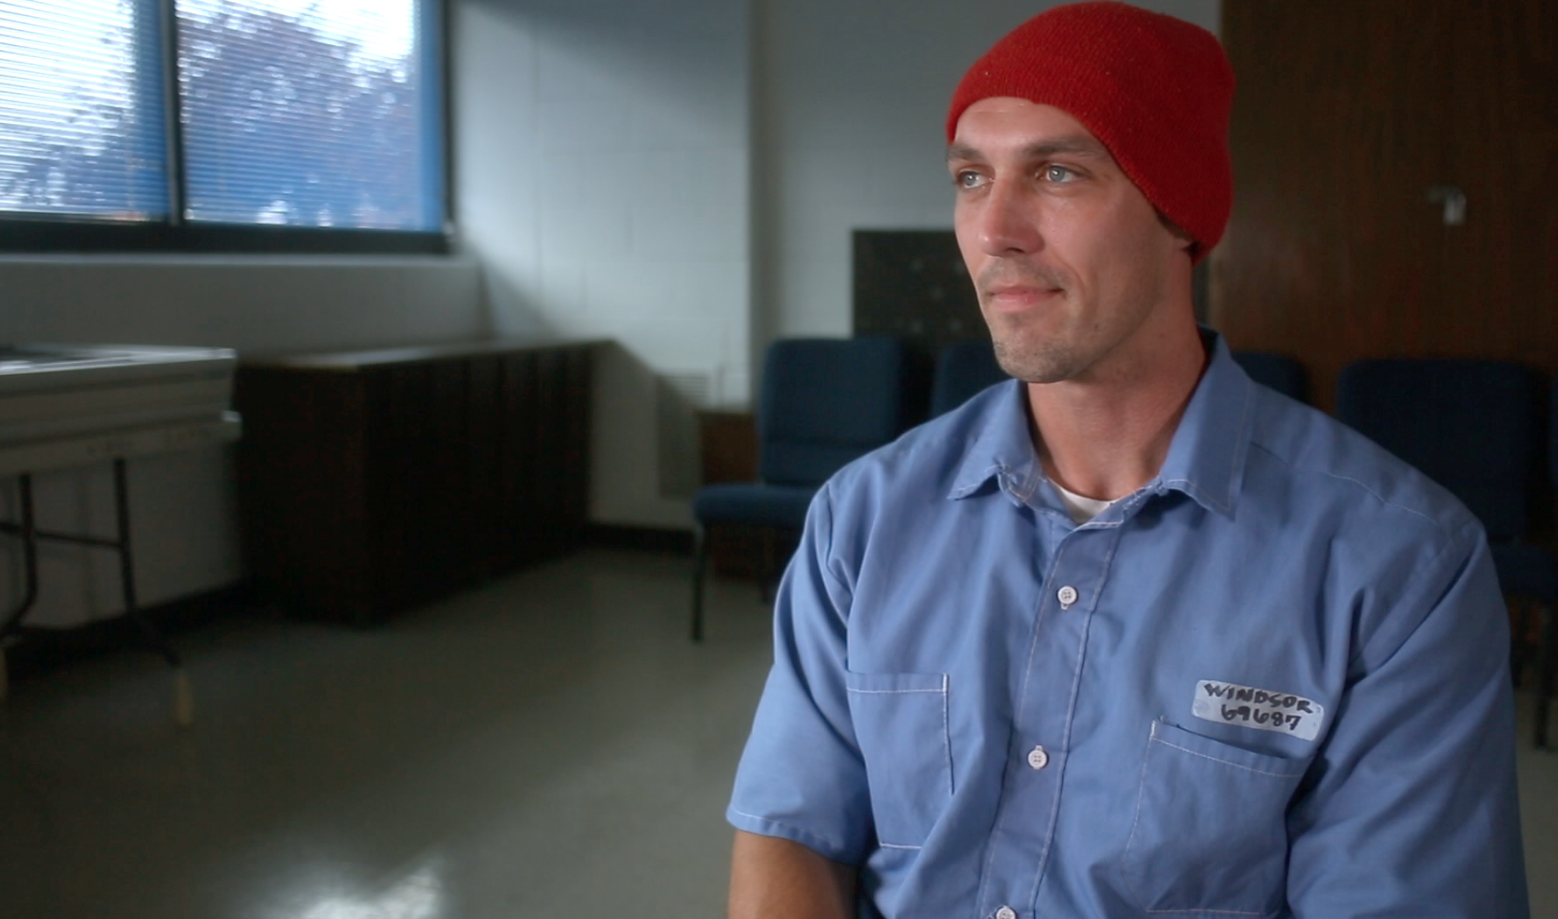 Inmate Shares Valuable Lessons He Learned From Meeting